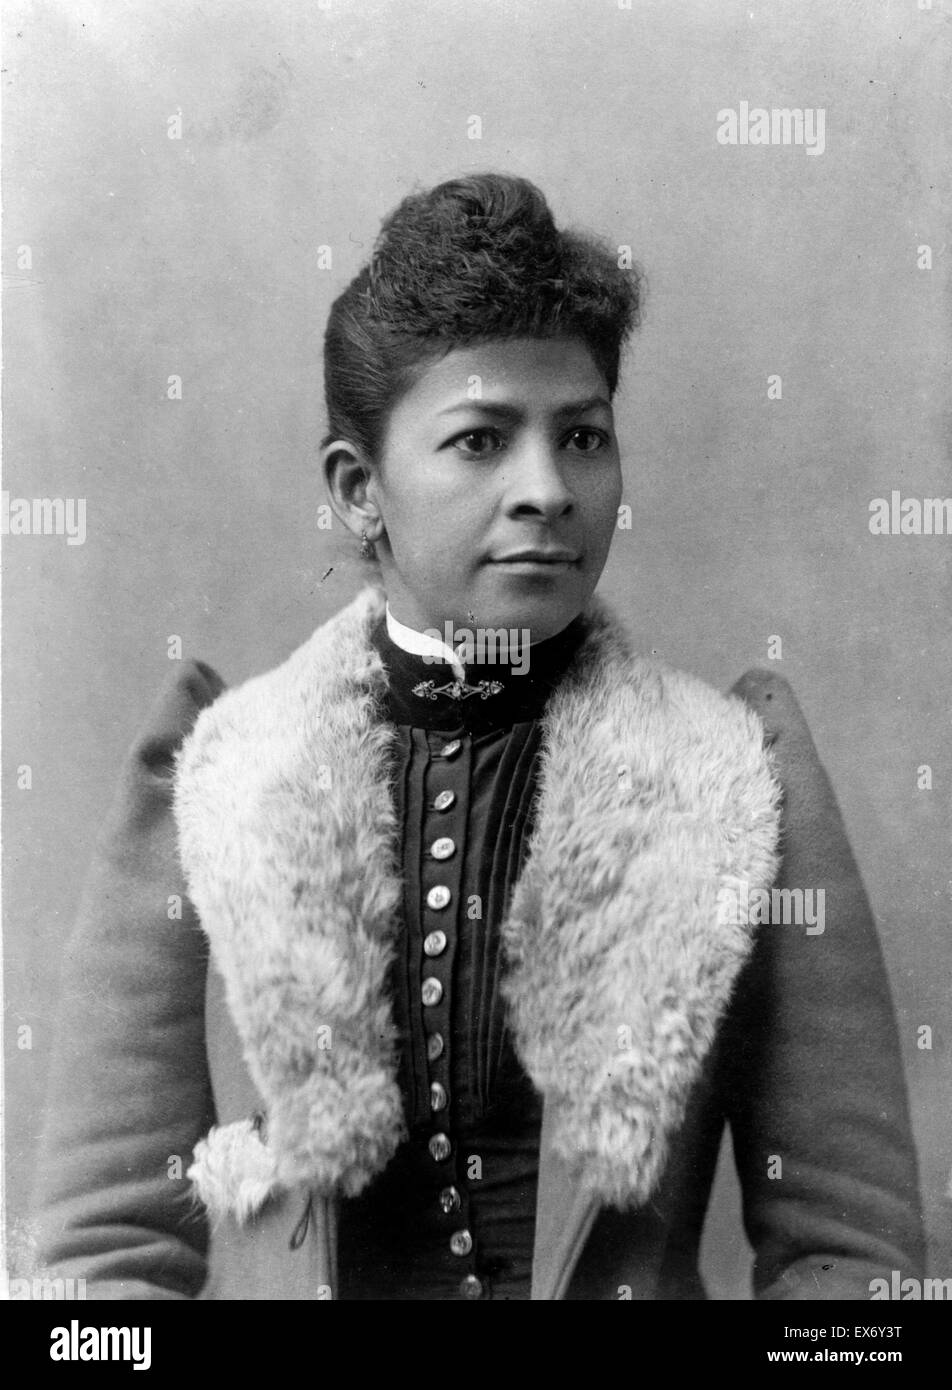 African American woman, half-length portrait, (facing slightly right). Published 1899 or 1900. - Stock Image